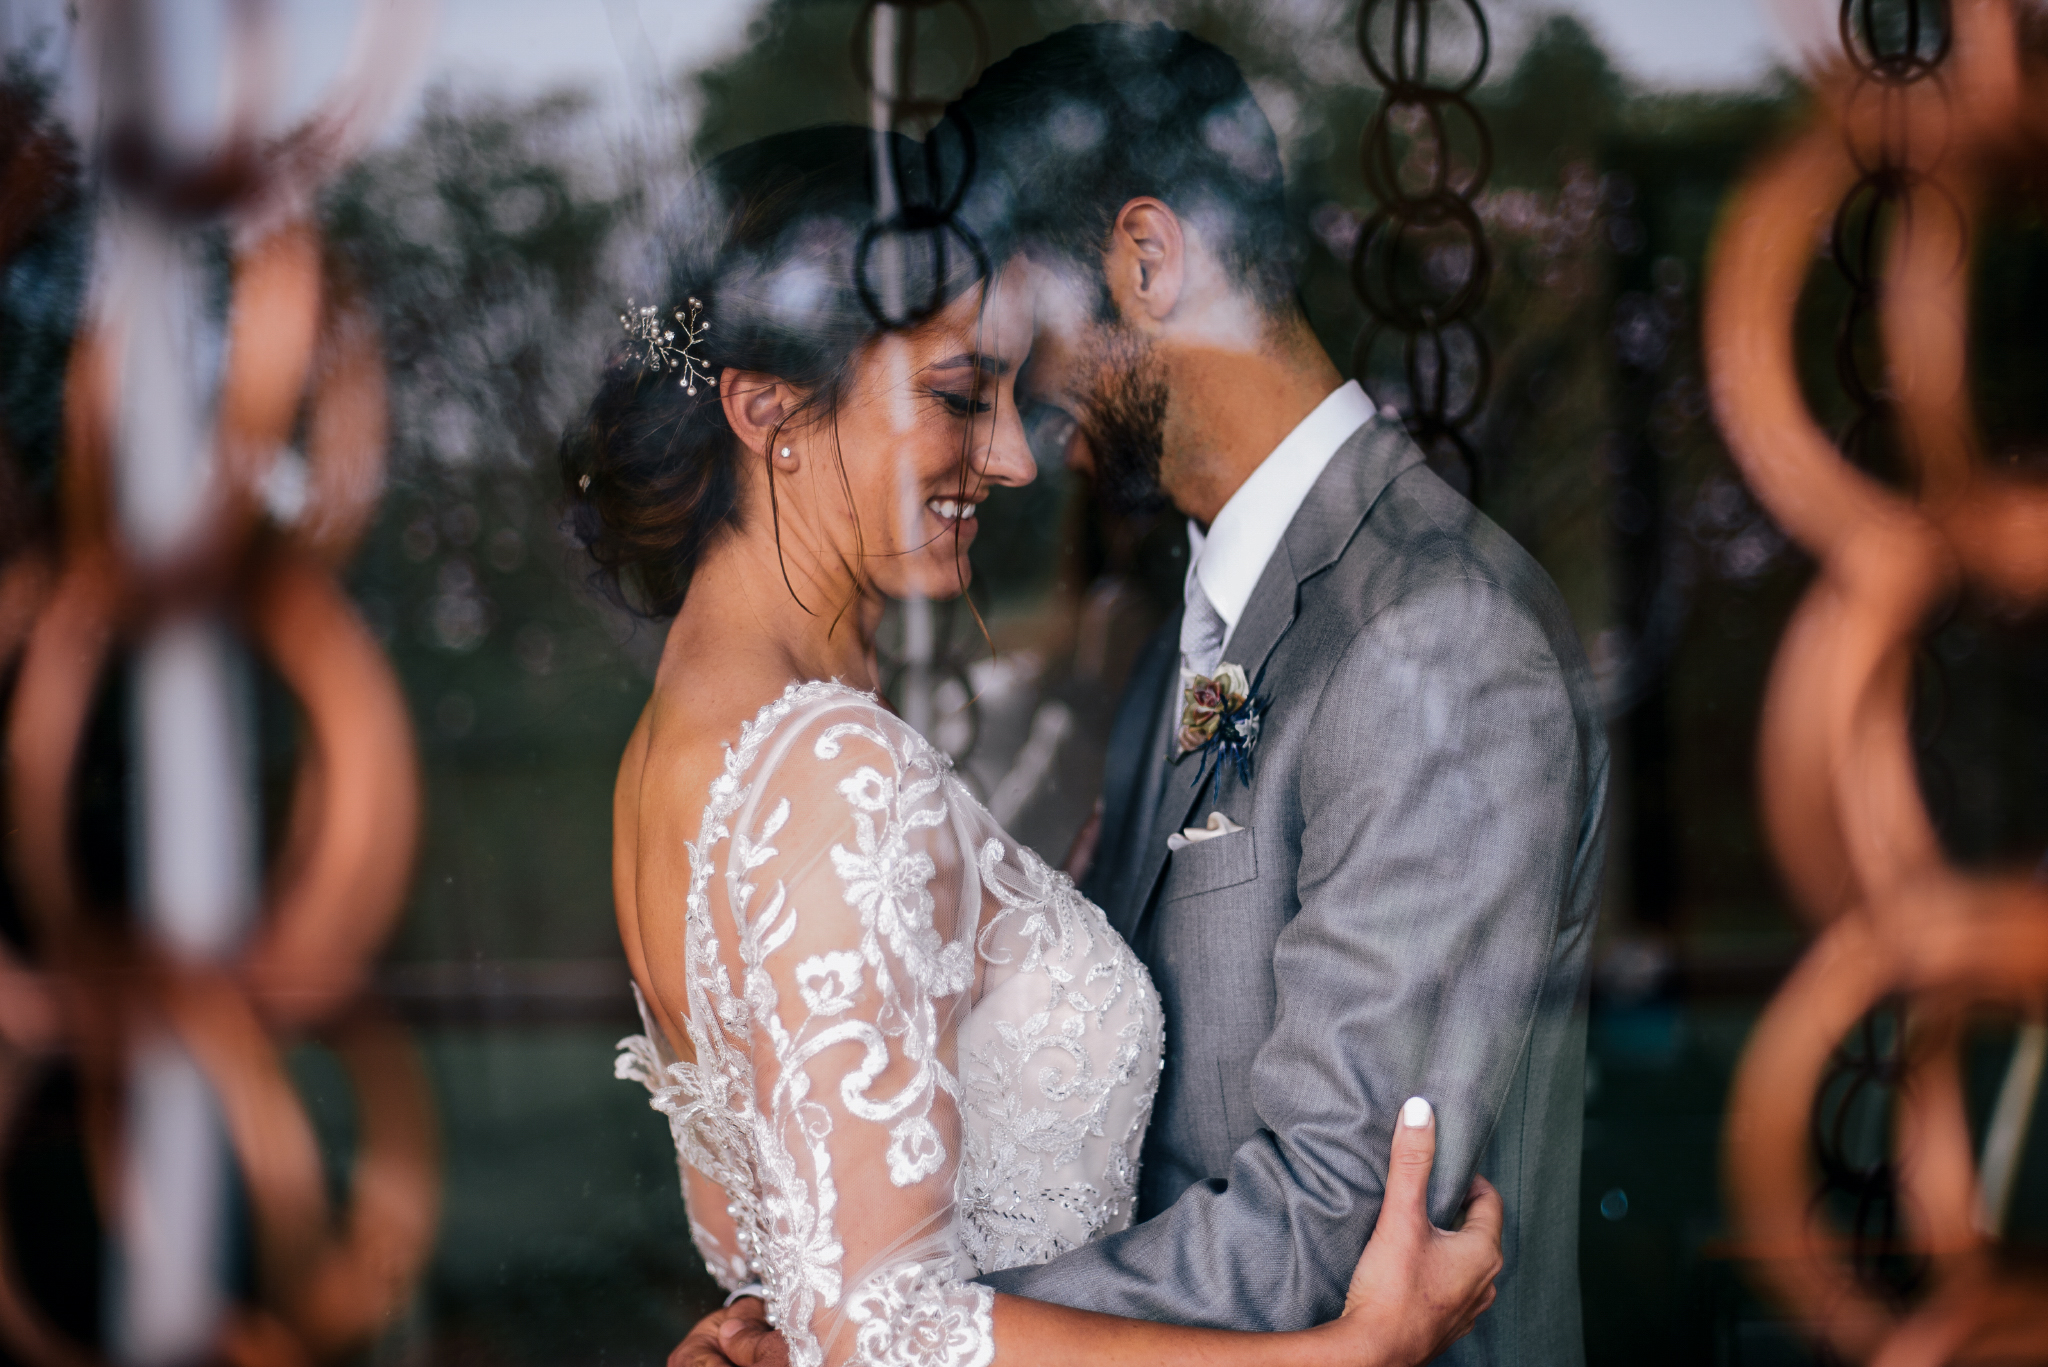 san diego wedding   photographer | married couple dancing as seen through glass window reflecting   chains hanging